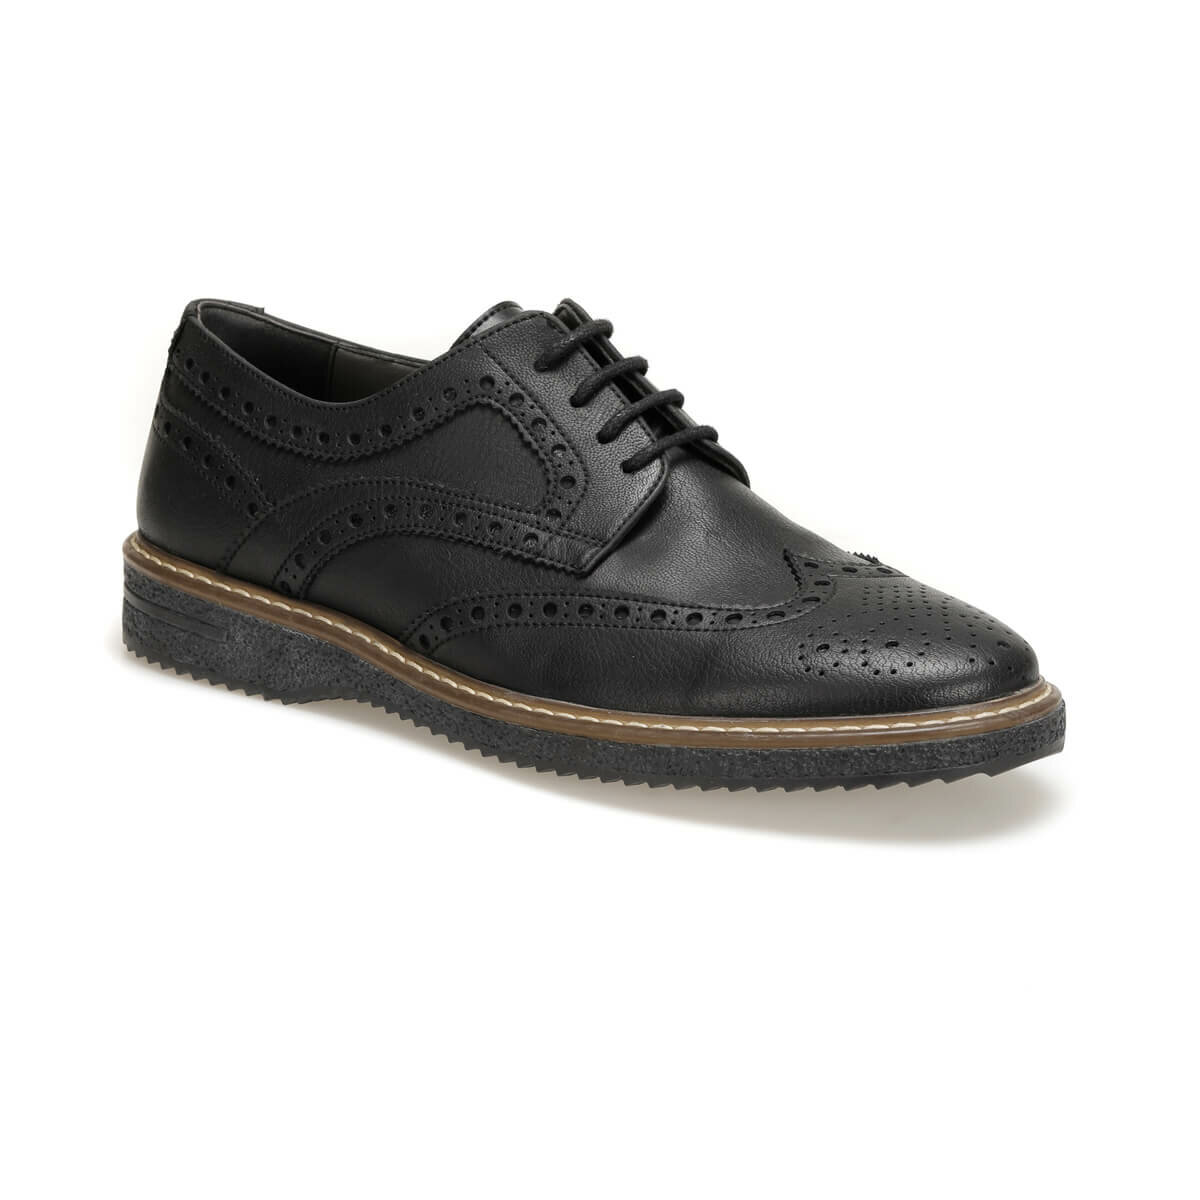 FLO 21750 Black Men 'S Classic Shoes JJ-Stiller